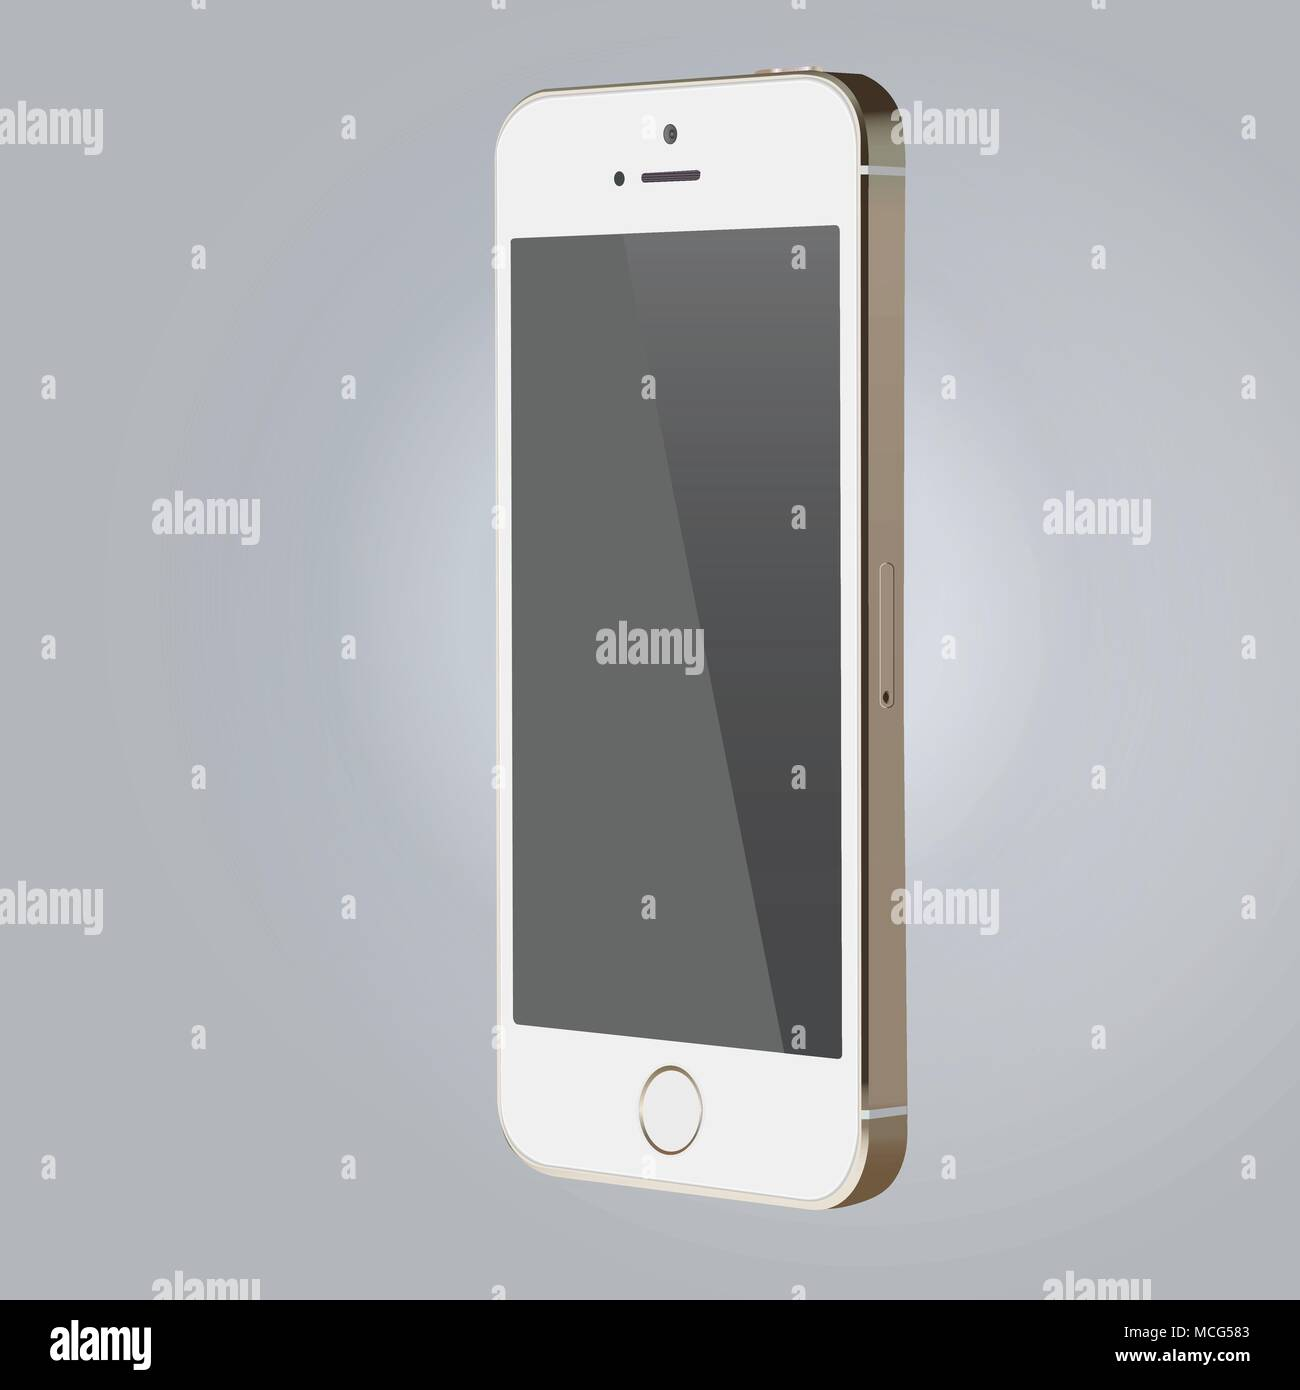 Realistic device mock-up, white color smartphone vector illustration - Stock Vector